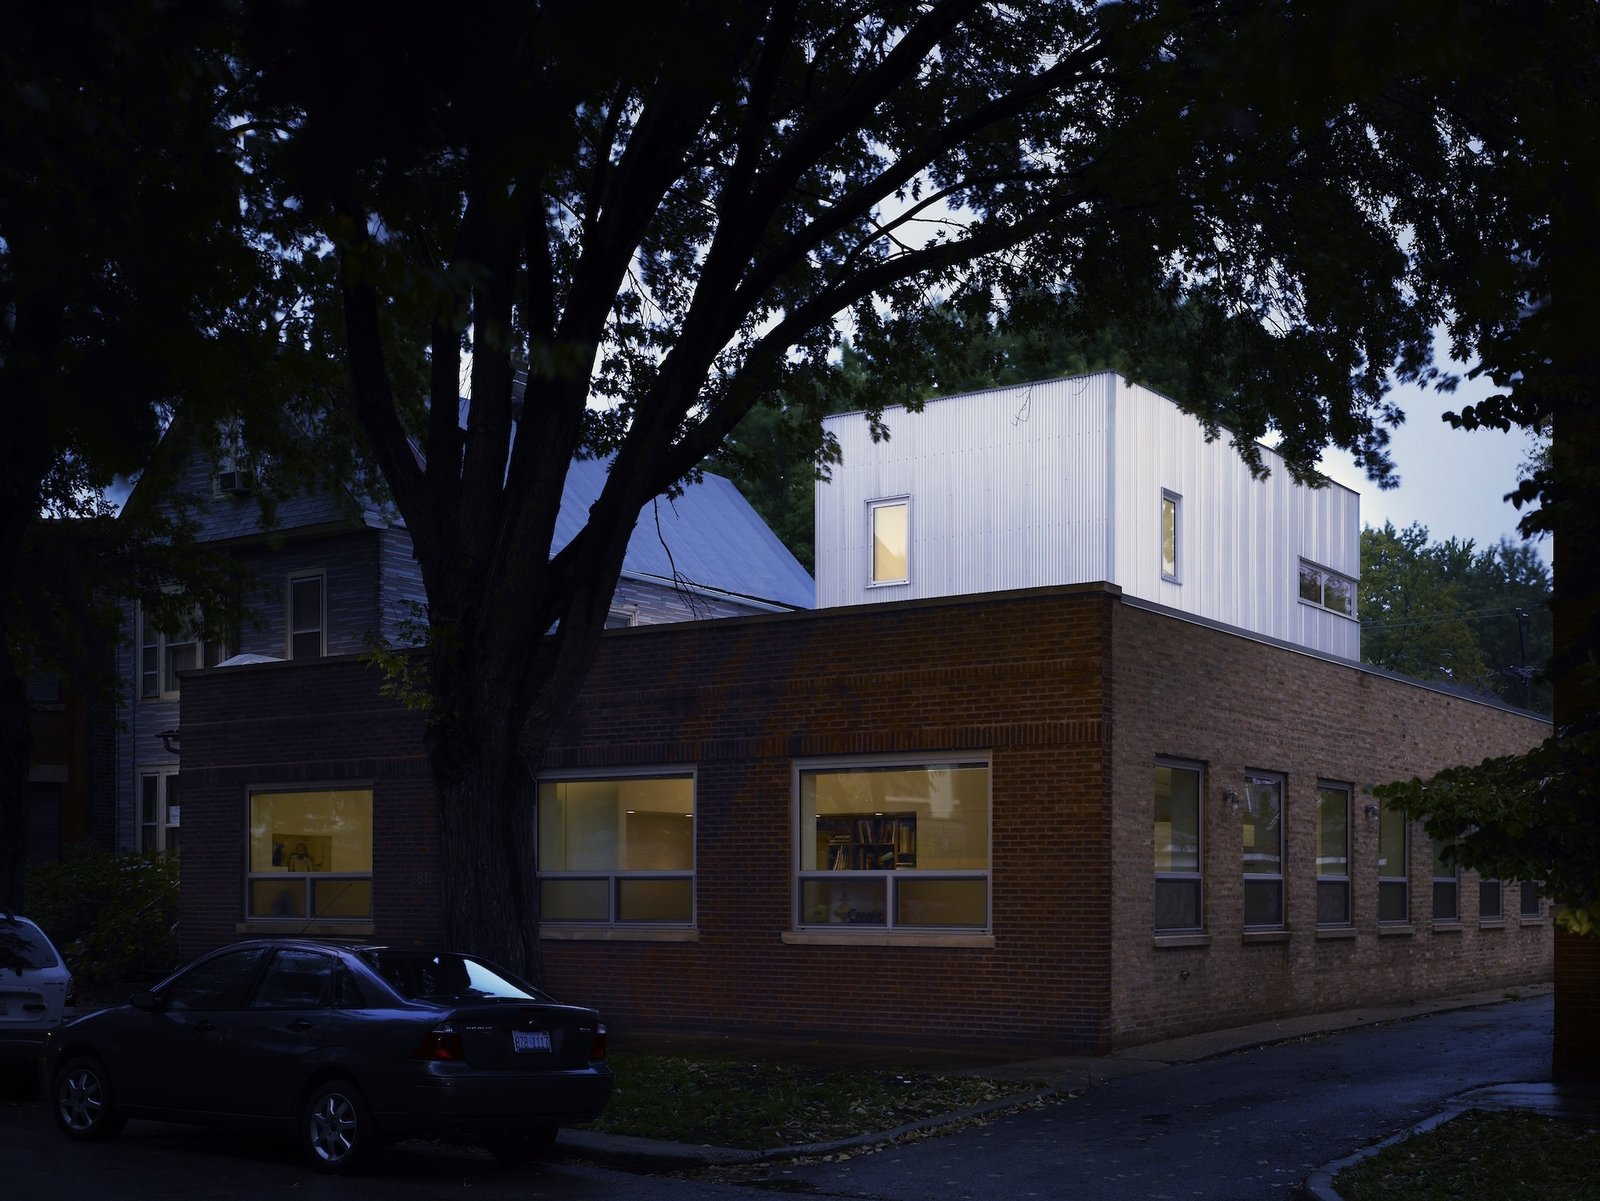 Appearing almost as a glowing container stack, the corrugated aluminum addition relates to the low-lying structure's commercial past. Not that owners Dave and Jeannette Jordano were saddled with rehab and remediation. The previous occupant, architecture firm Morgante Wilson, outgrew the 50-foot-by-50-foot footprint but left the space in fine condition.  Ravenswood Residence by Ian Spula